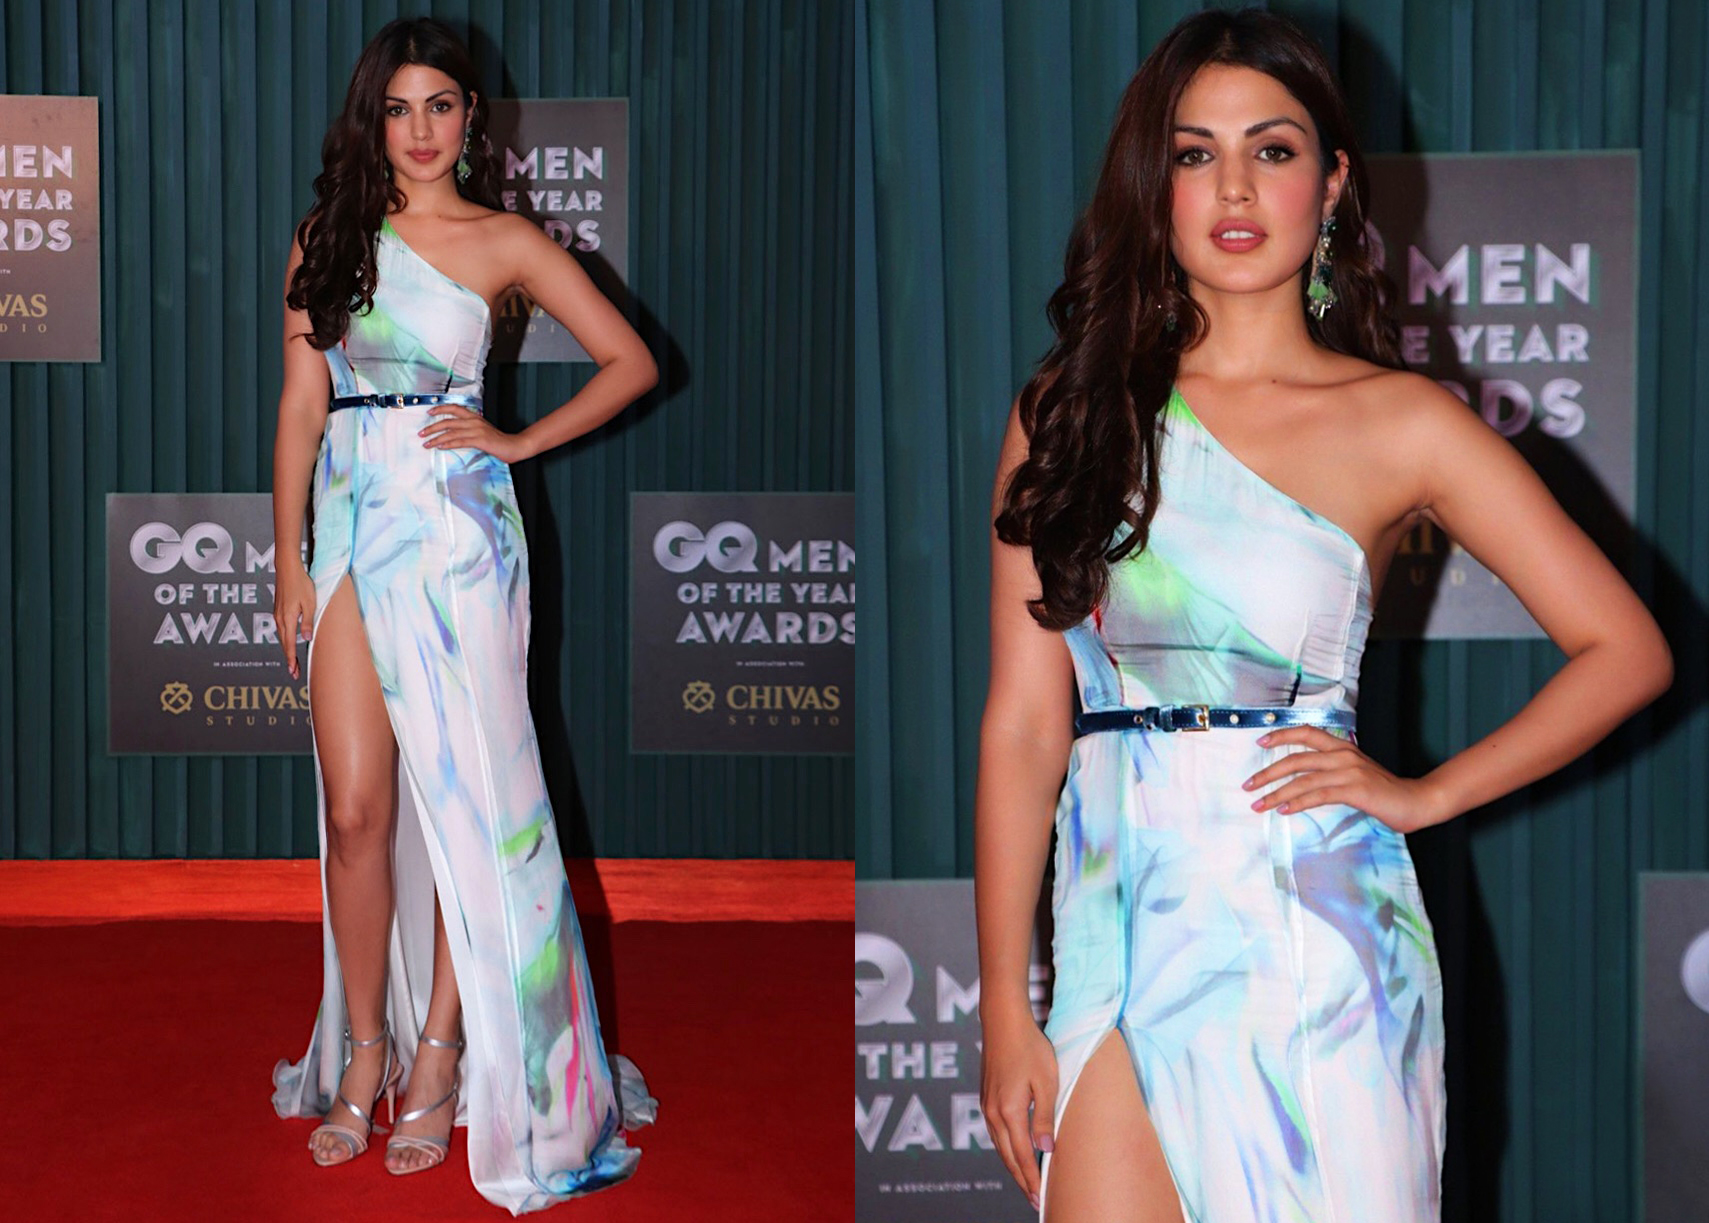 RHEA CHAKRABORTY DRESSED BY RAQUEL BALENCIA FOR GQ MEN OF THE YEAR AWARDS 2018